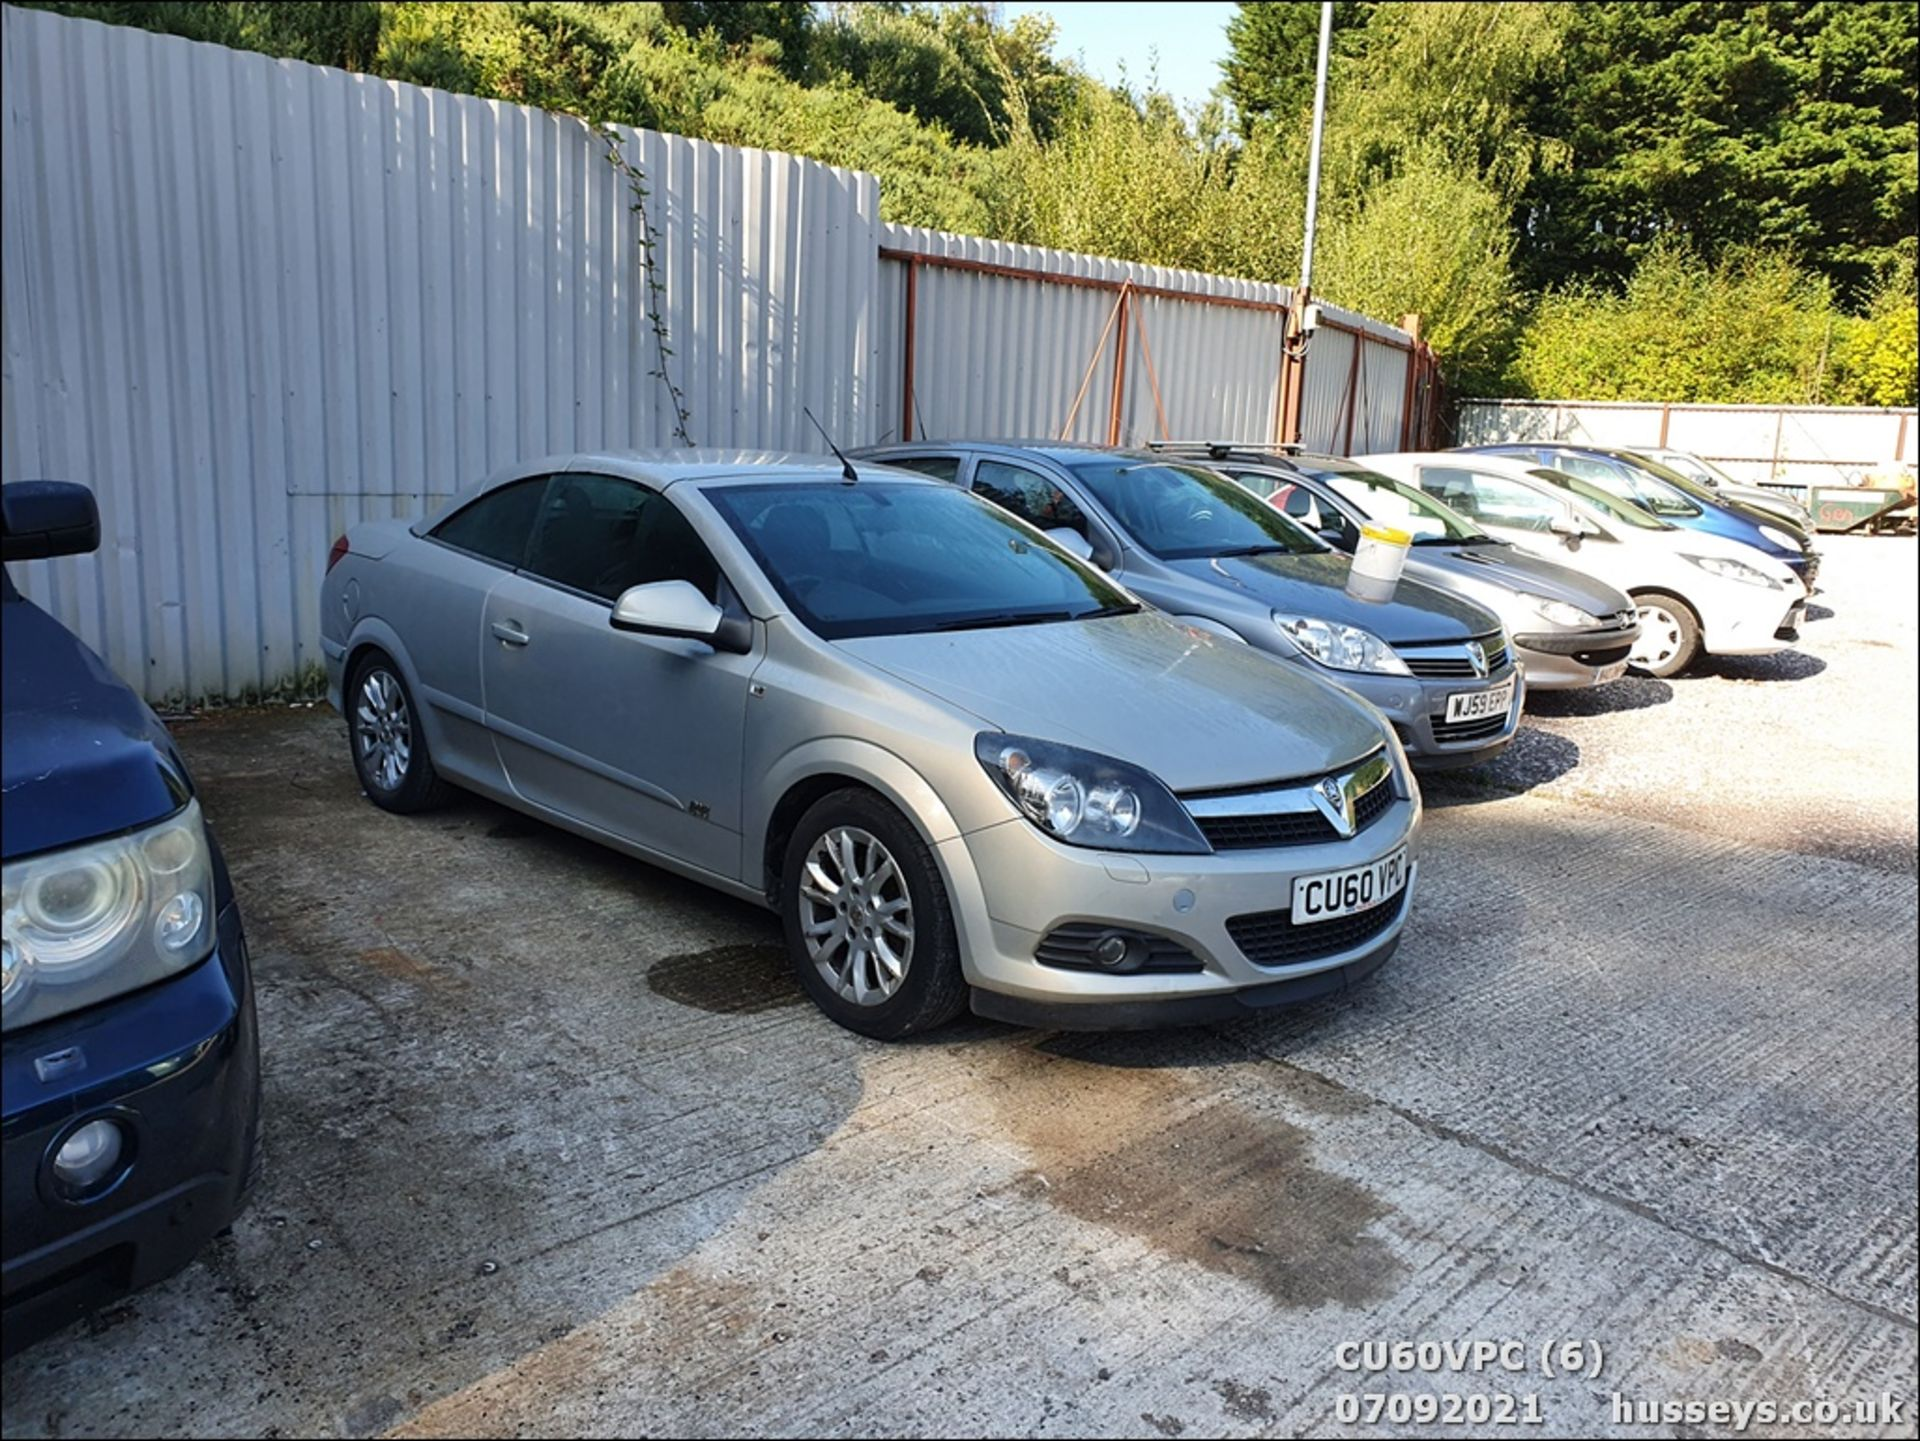 11/60 VAUXHALL ASTRA SPORT - 1796cc 2dr Convertible (Silver, 123k) - Image 6 of 12